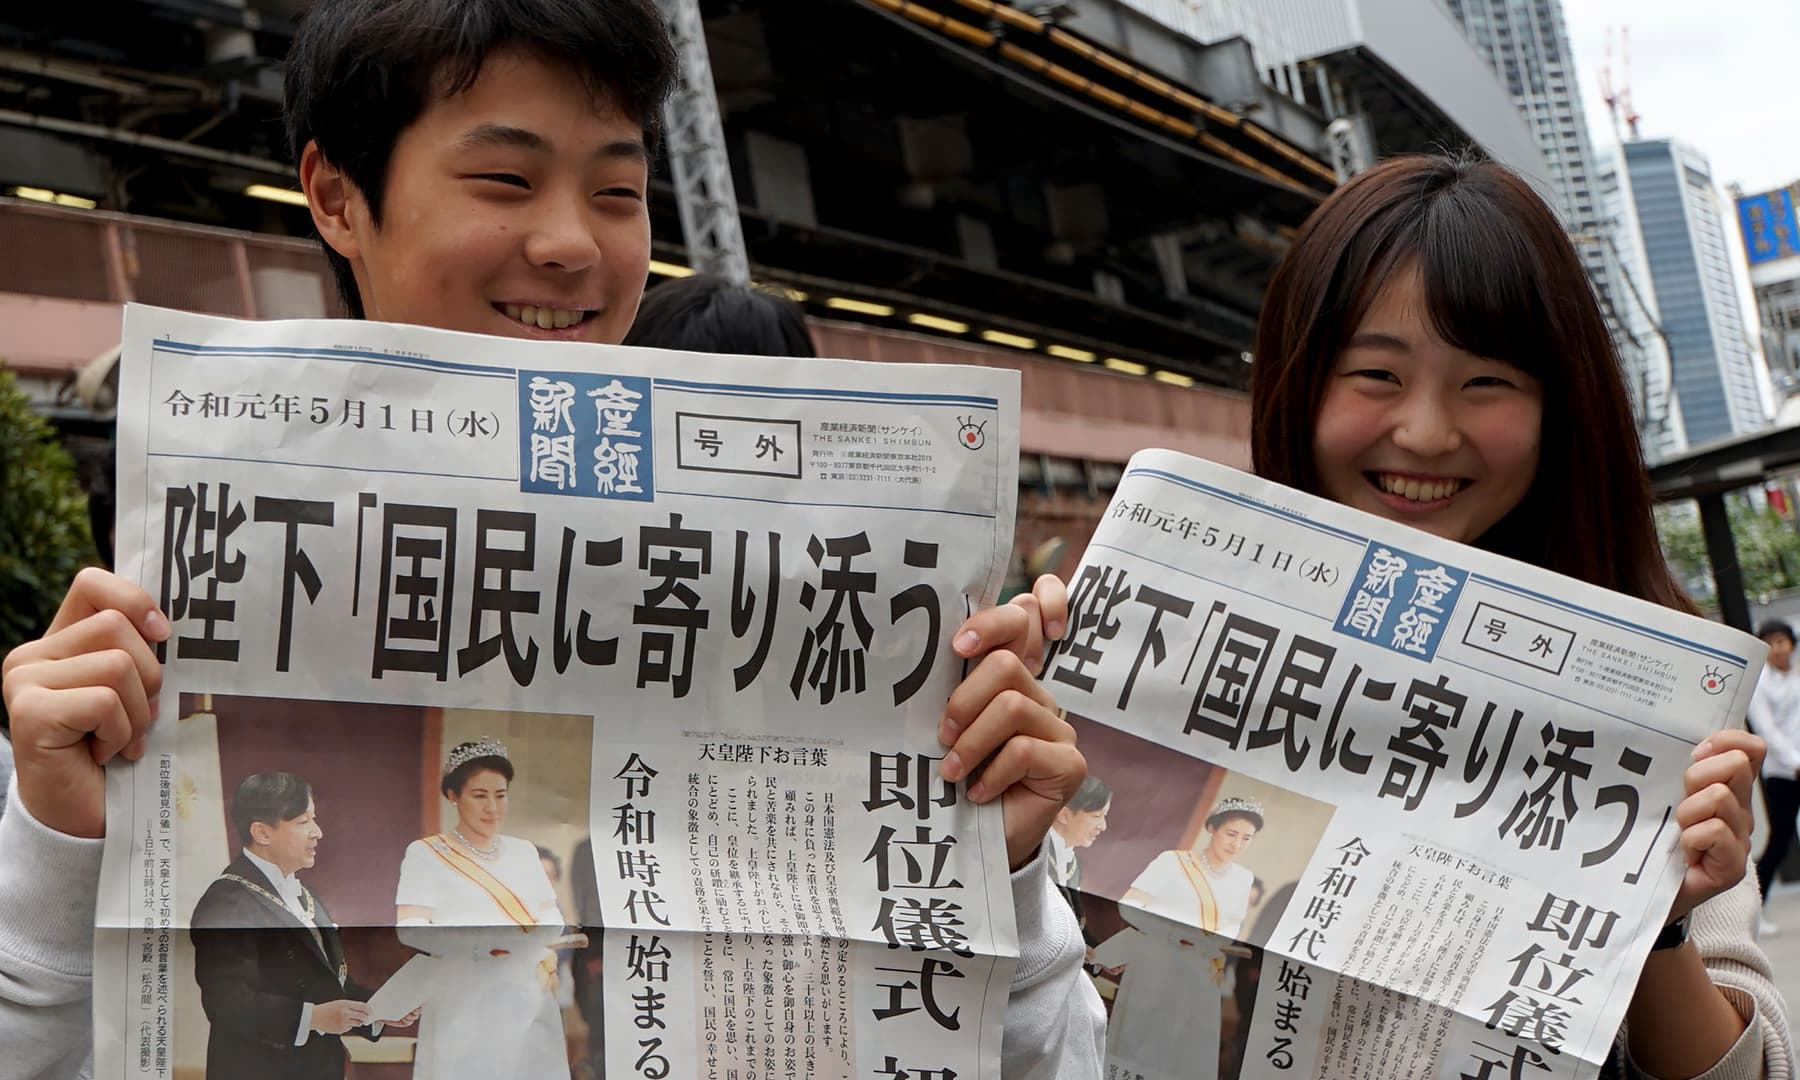 Residents show the extra edition of newspapers reporting new Emperor Naruhito's accession to the throne in Tokyo on May 1, 2019. — AFP